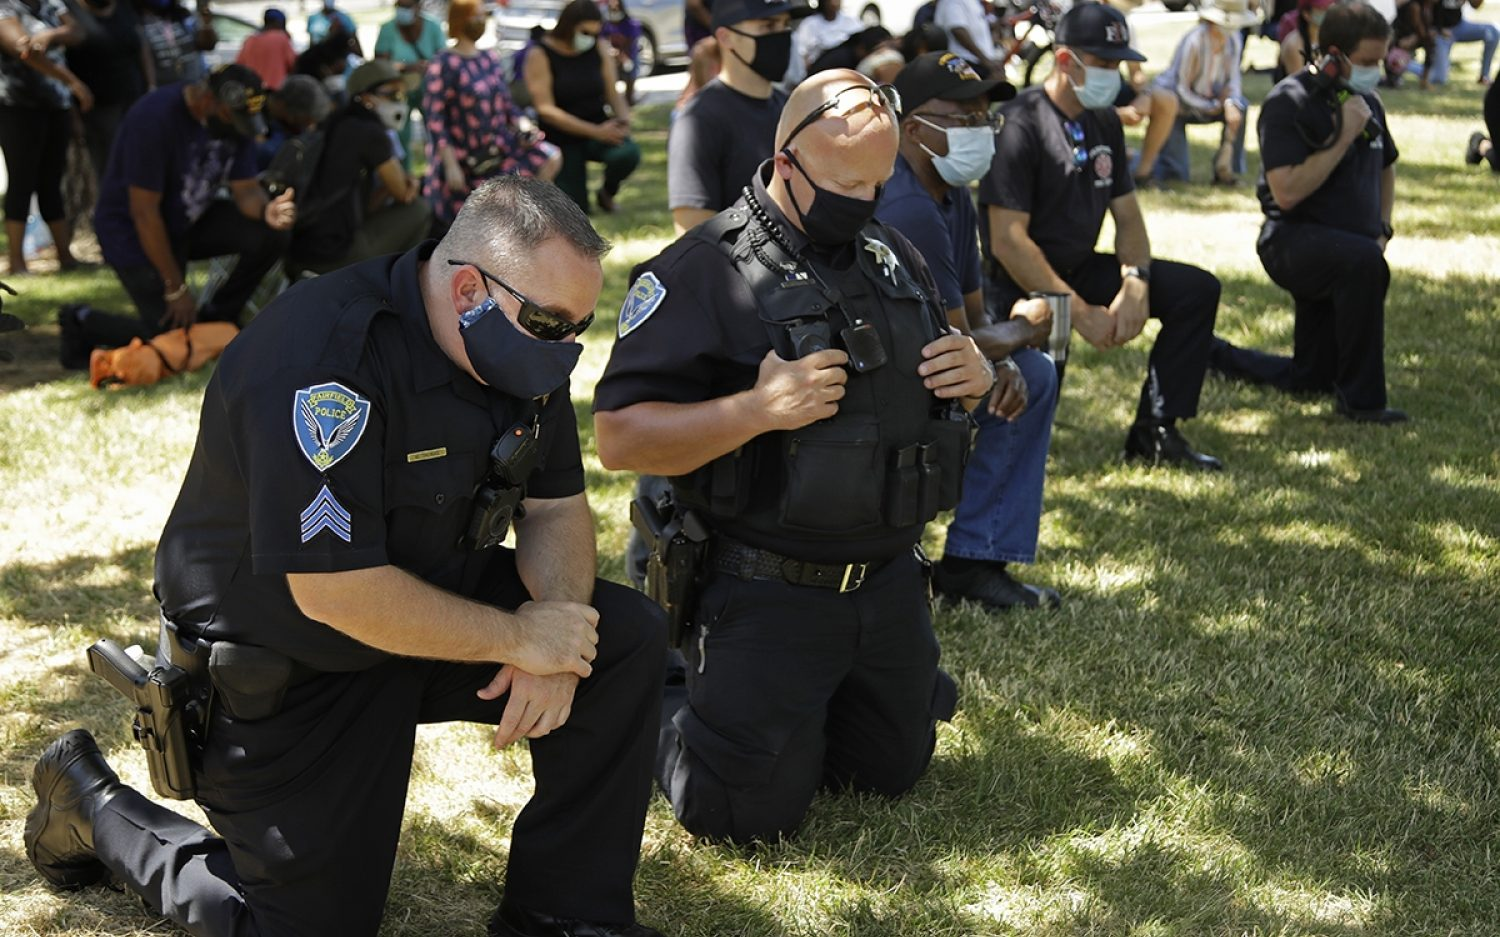 Changing policing for good